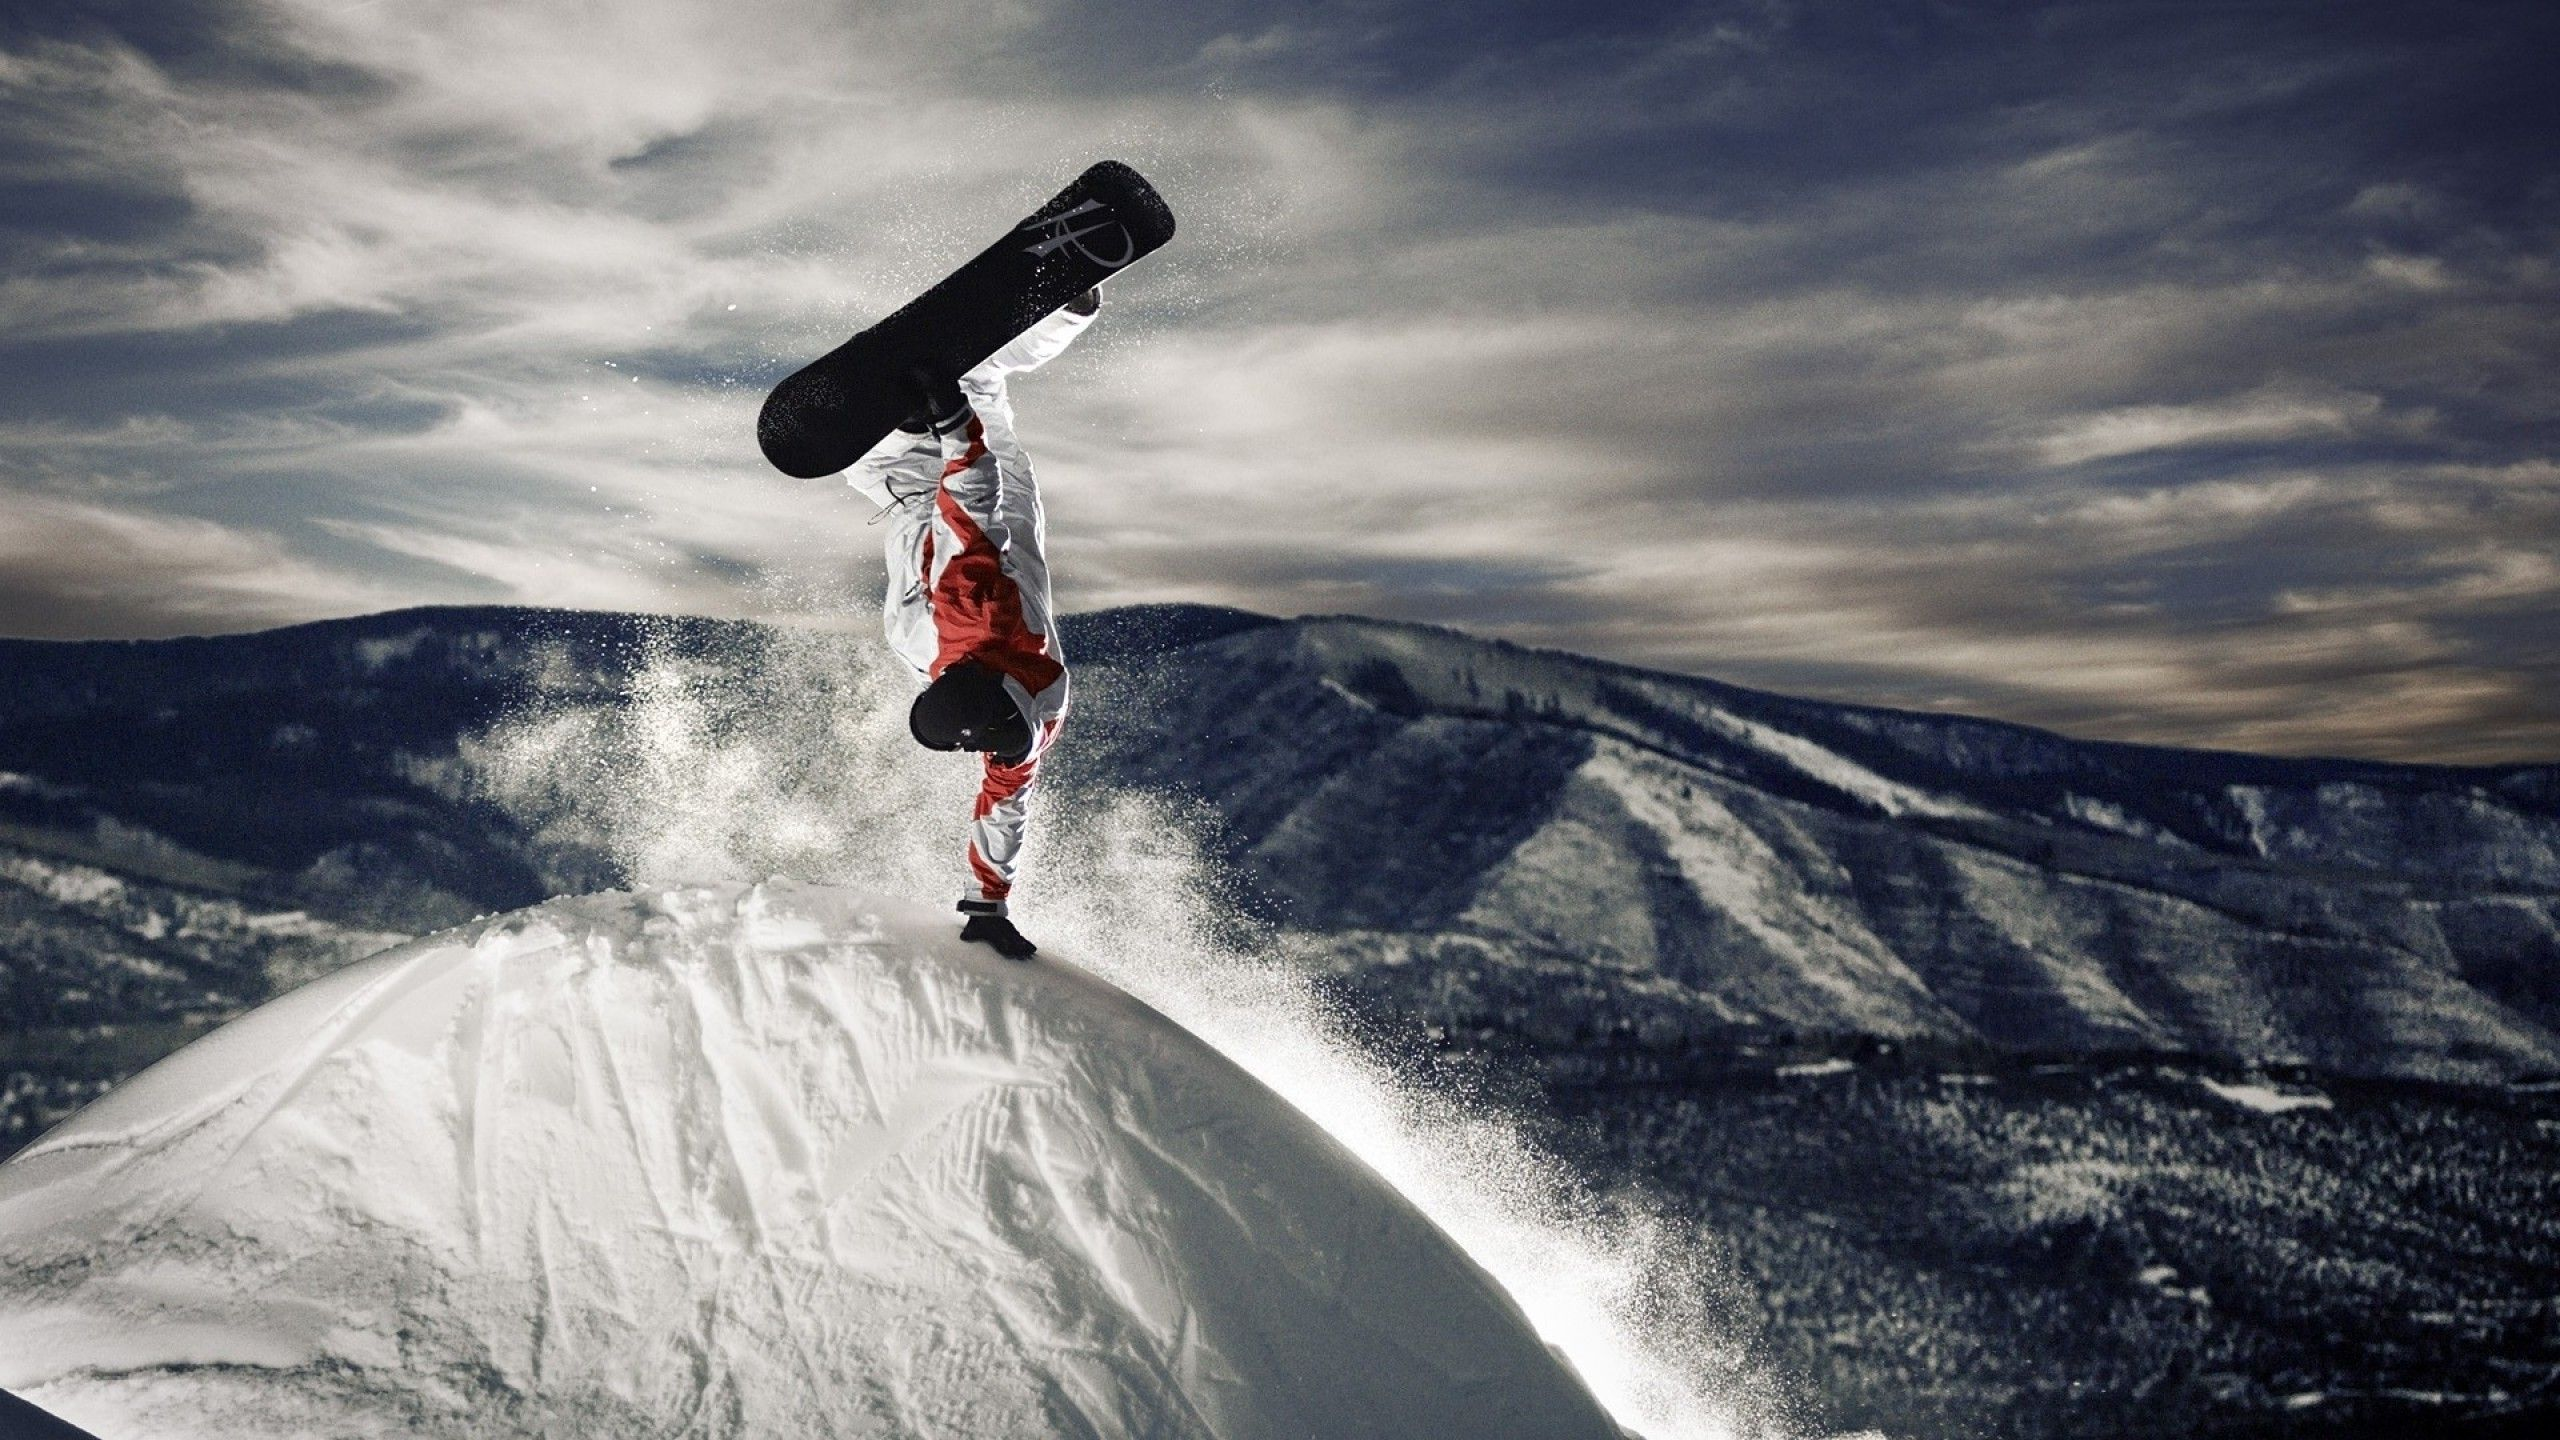 Pin By Sebastien Papuchon On Bleak Snowboarding Sports